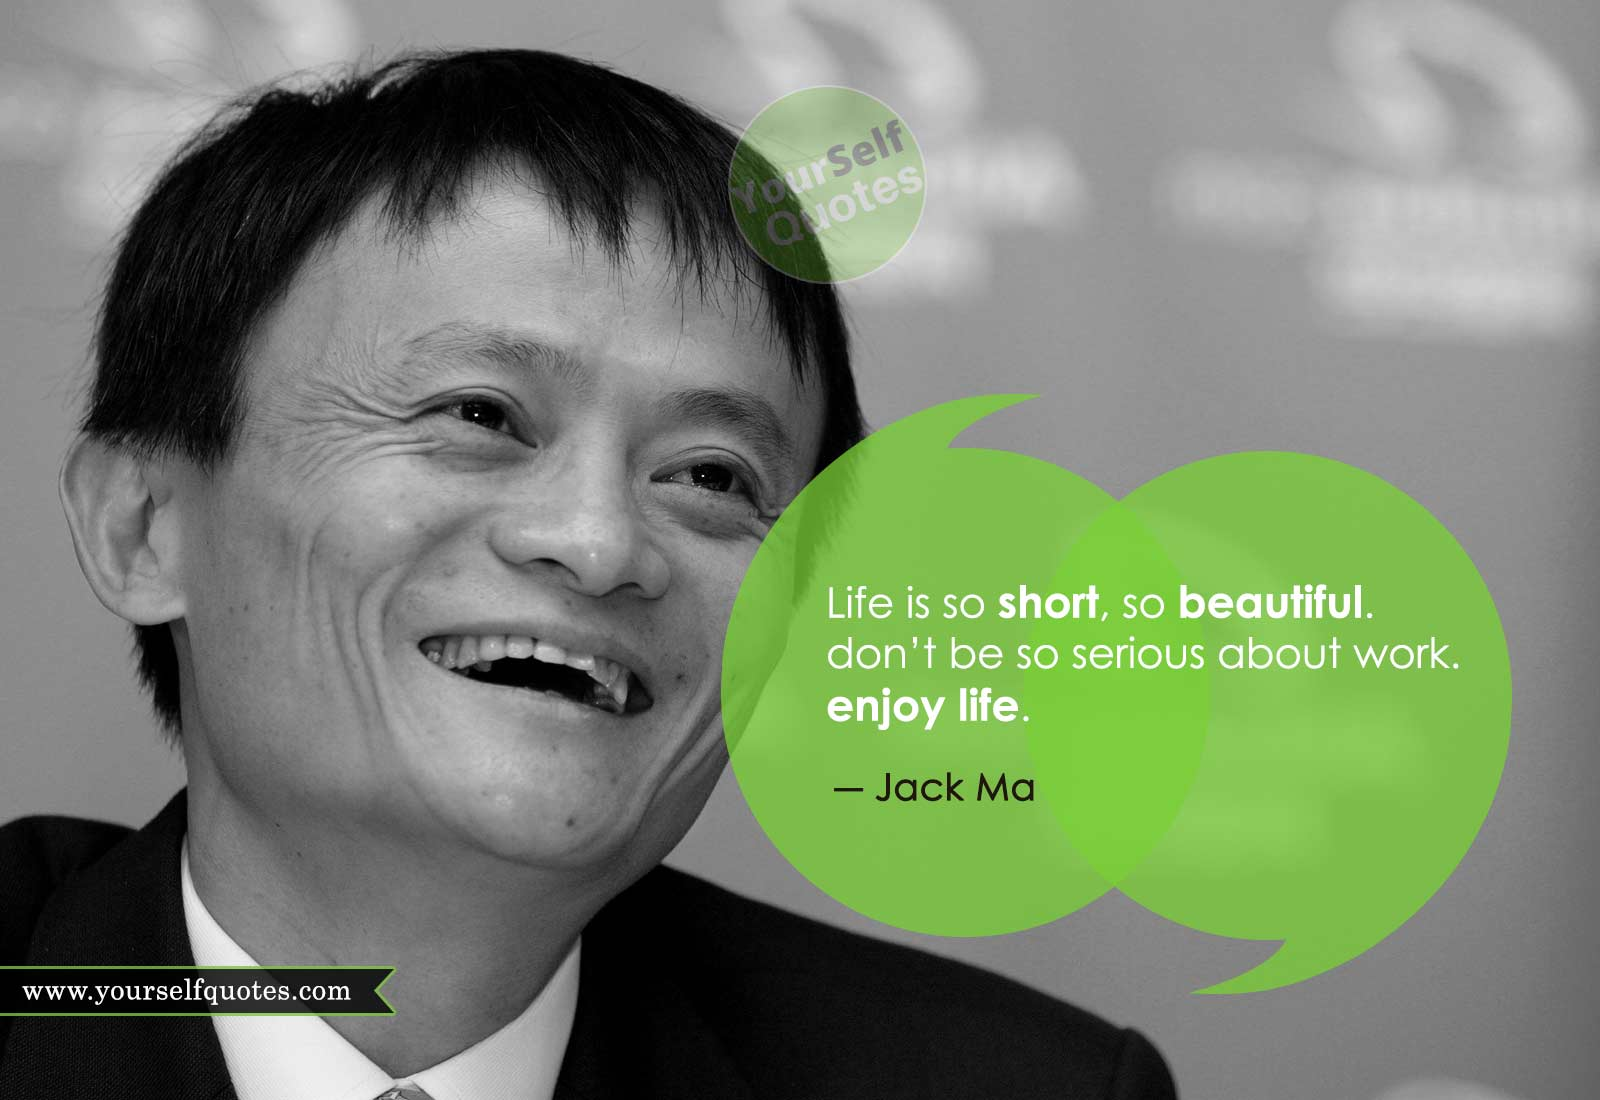 Jack MaQuotes on Life